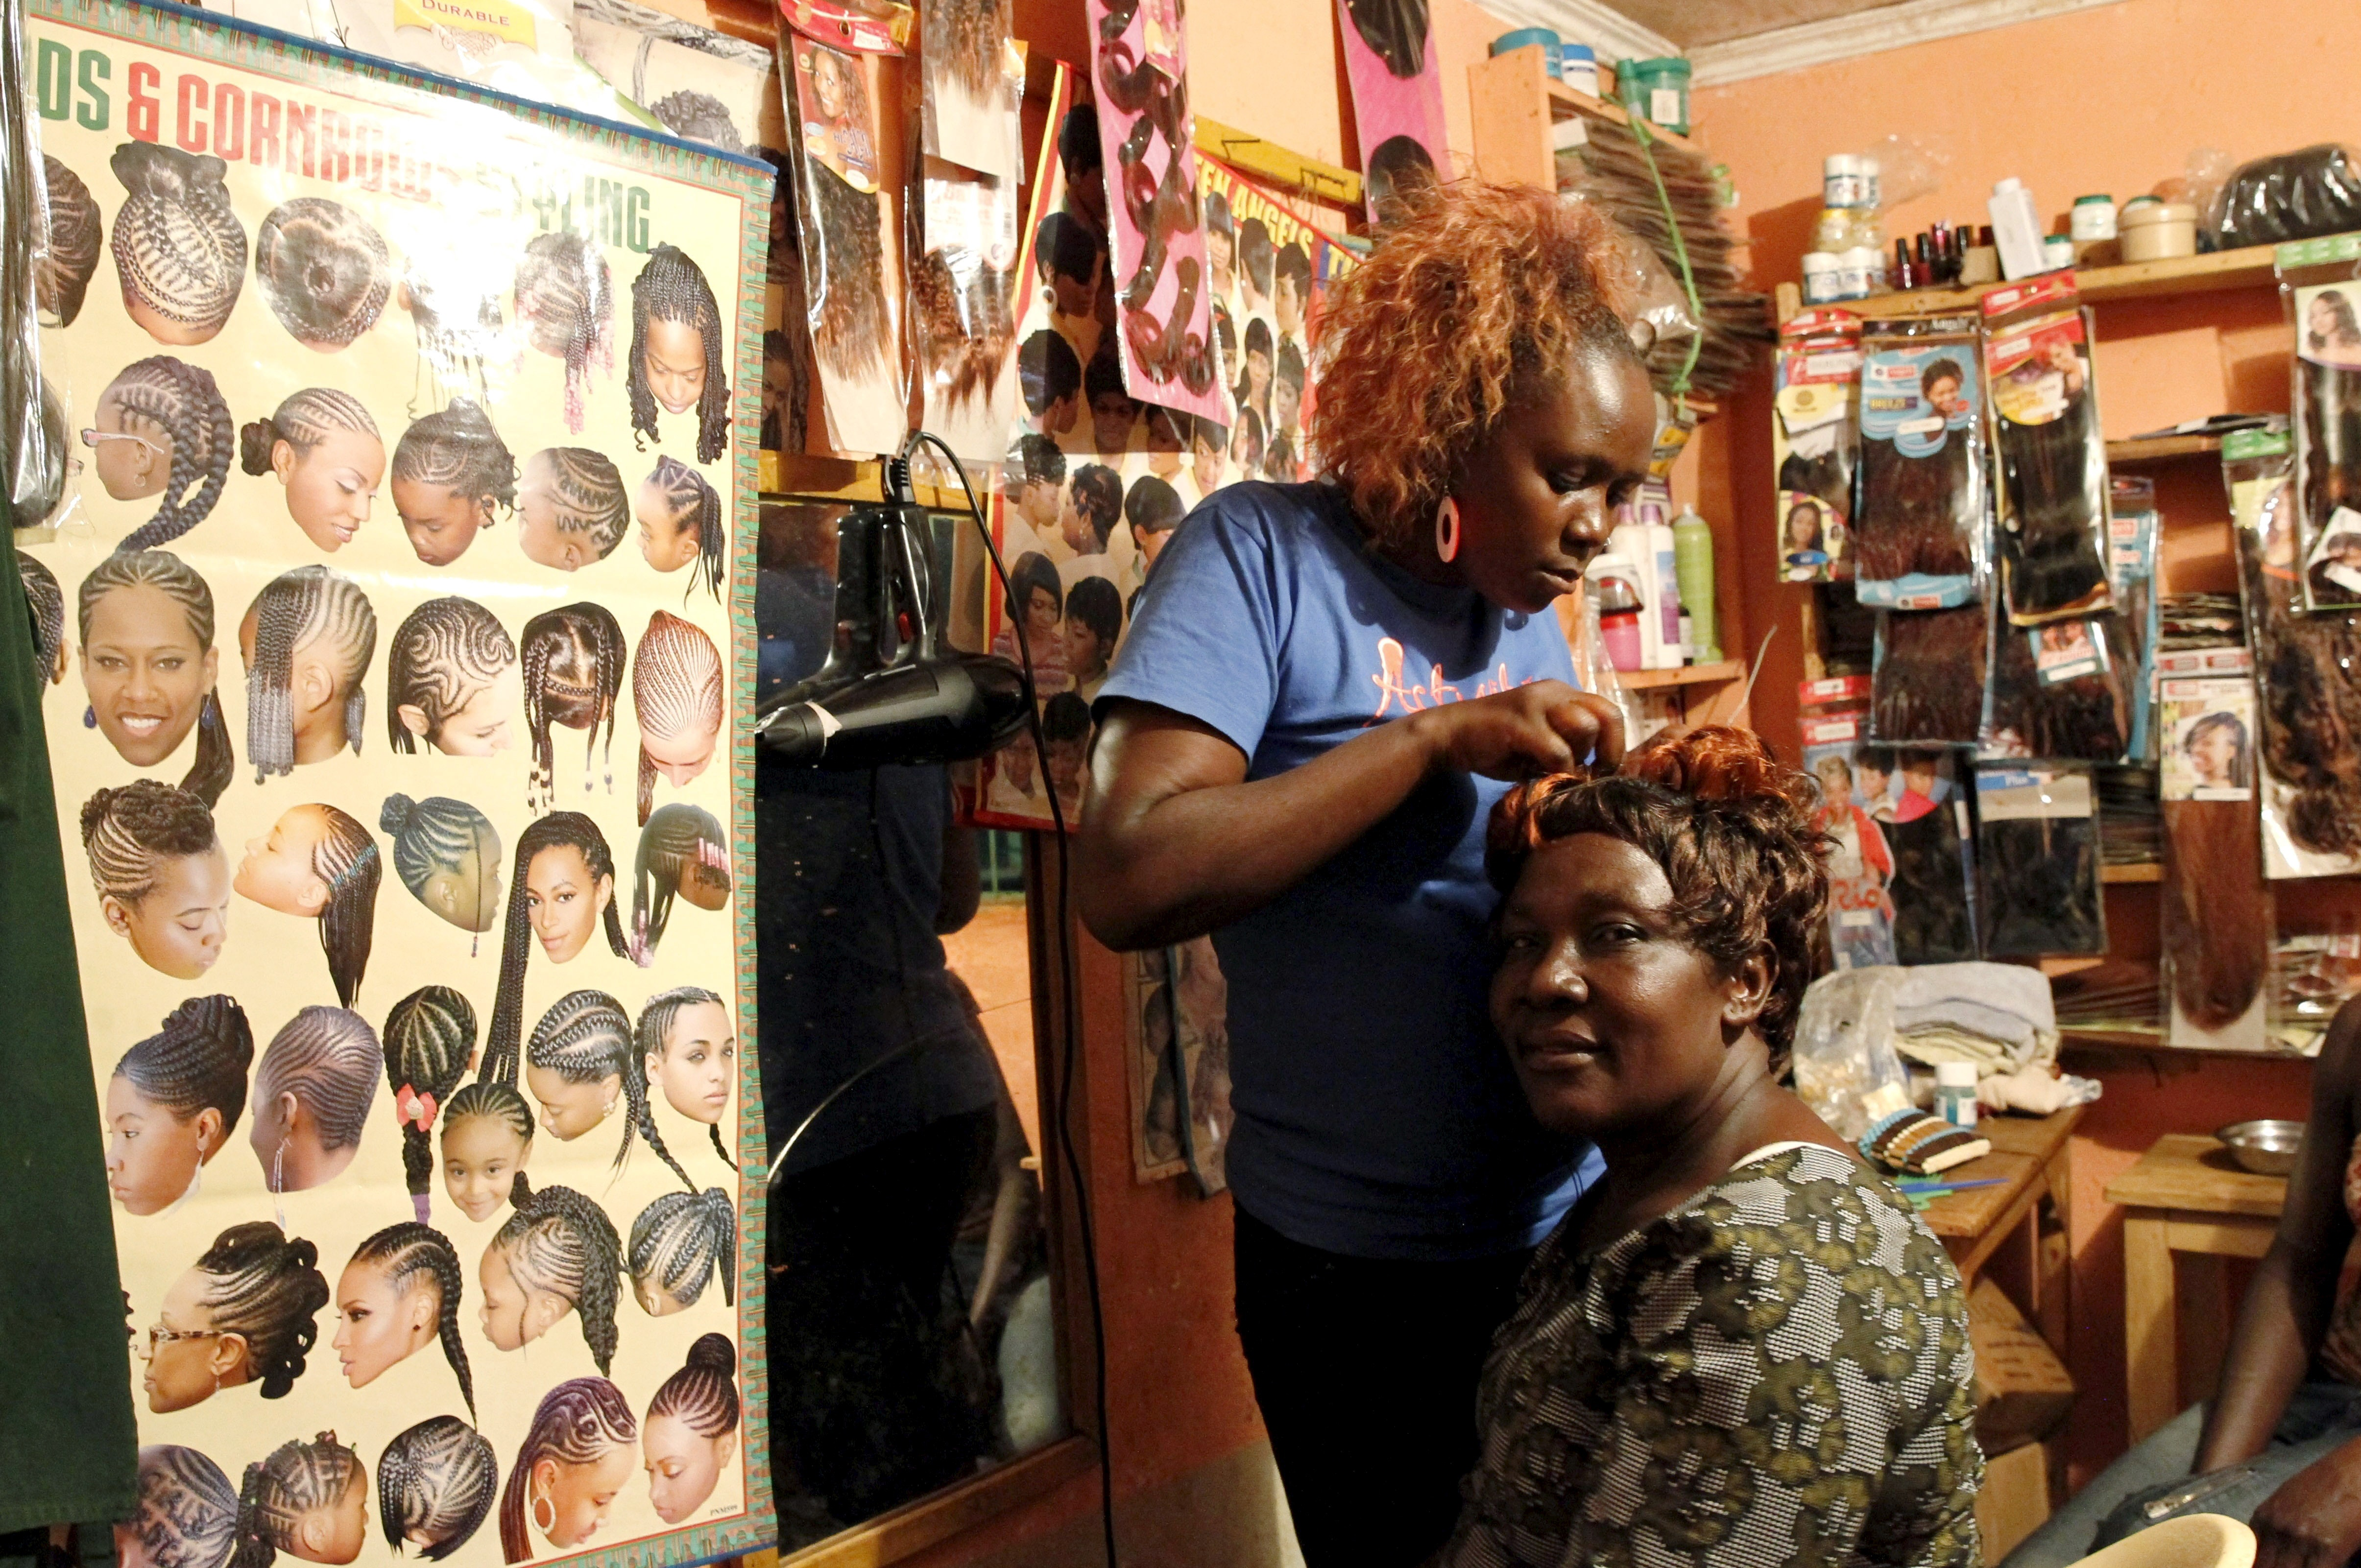 What religion requires women not to cut their hair?